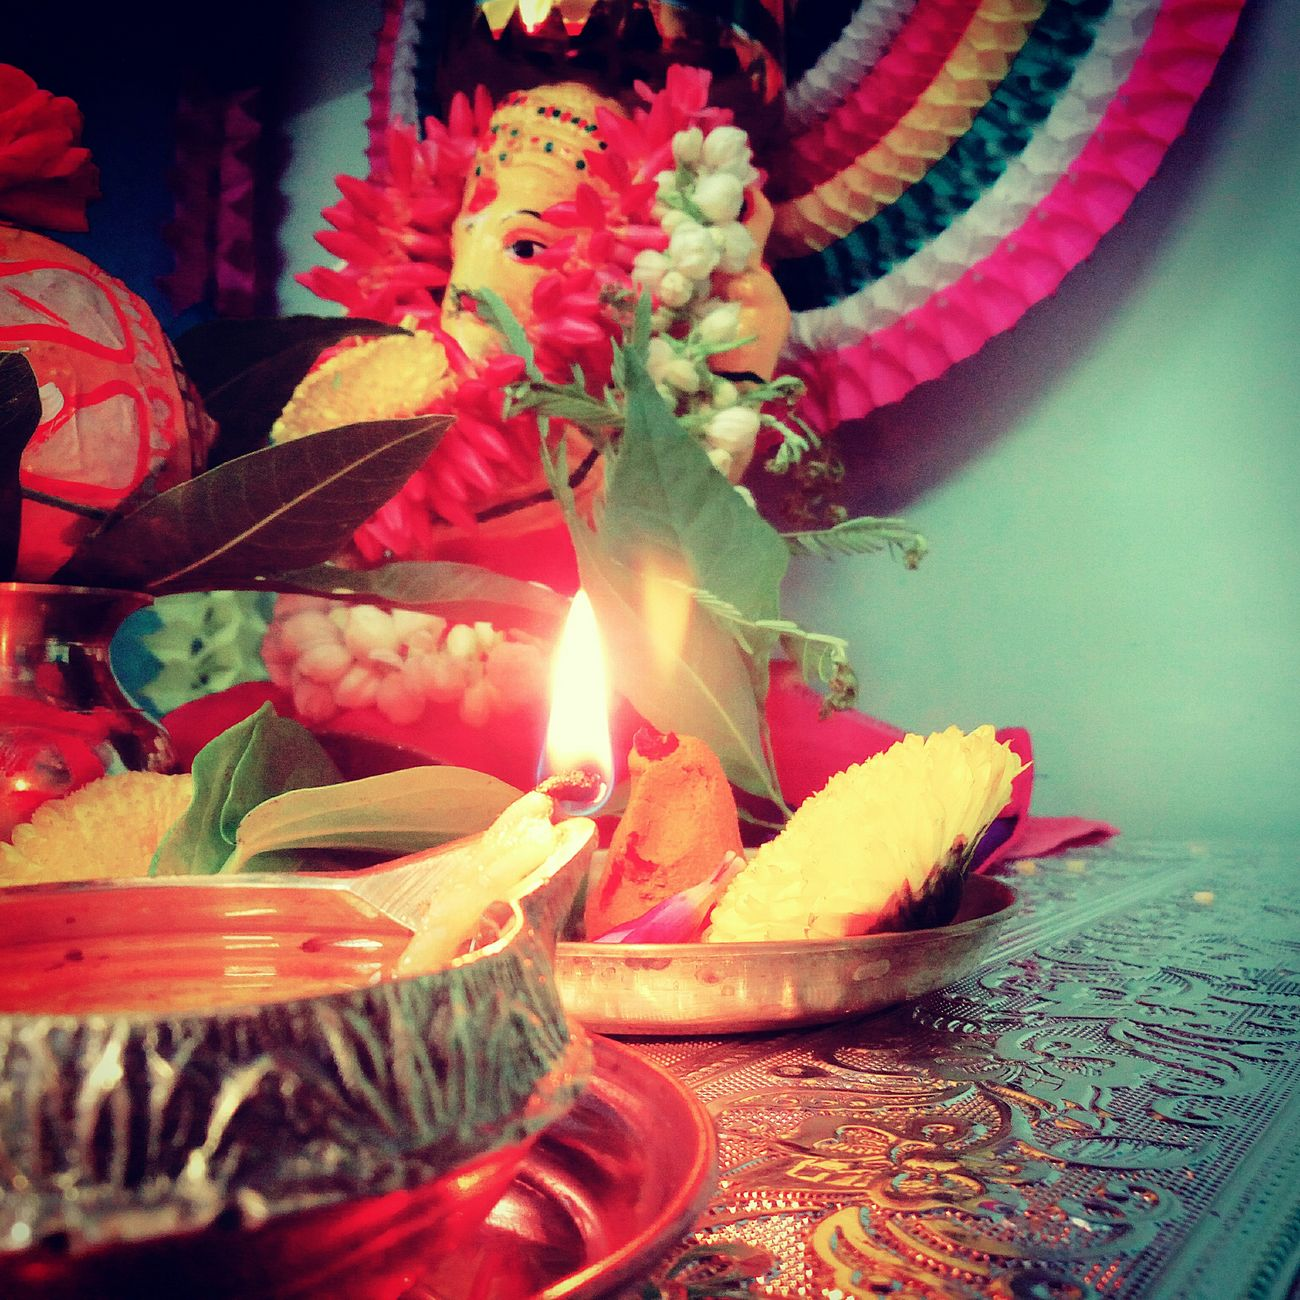 So.... like that view? Ganesh chaturthi Indoors  Flame Fire - Natural Phenomenon Close-up Decoration Multi Colored Flower Bunch Of Flowers Creativity Flower Arrangement Religious Offering Candlelight Lit No People Red Color Burning Visakhapatnam Follow4follow Followme India_clicks Followback